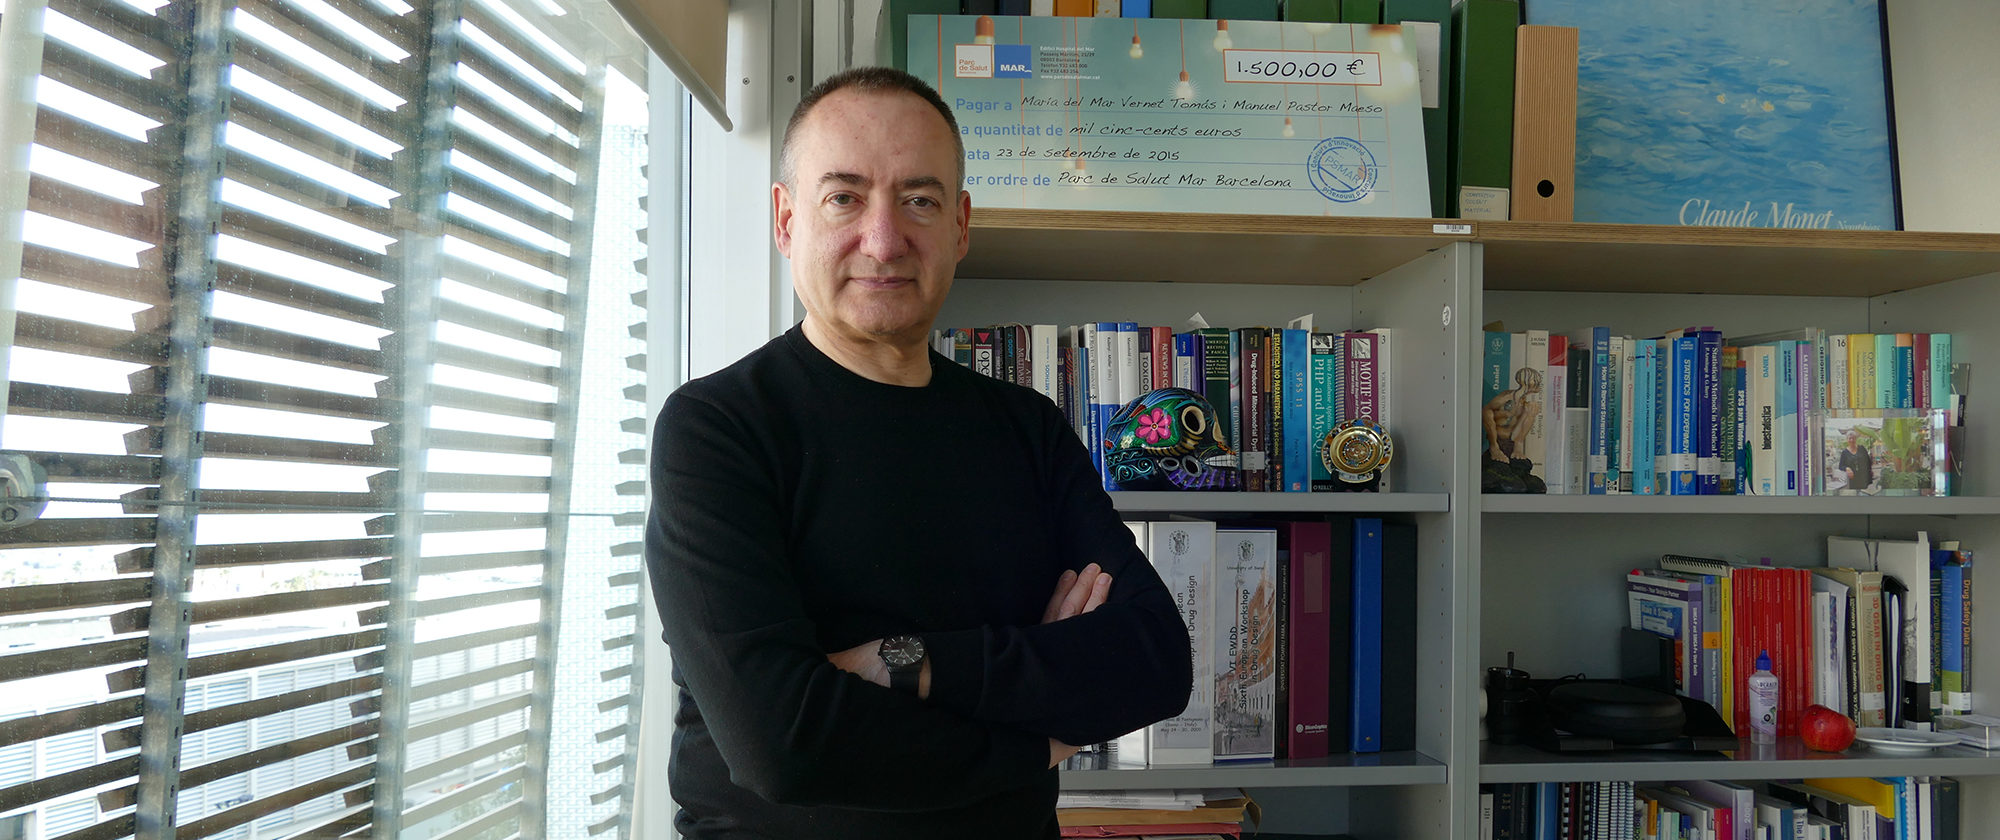 Manuel Pastor, PI of the PharmacoInformatics Group